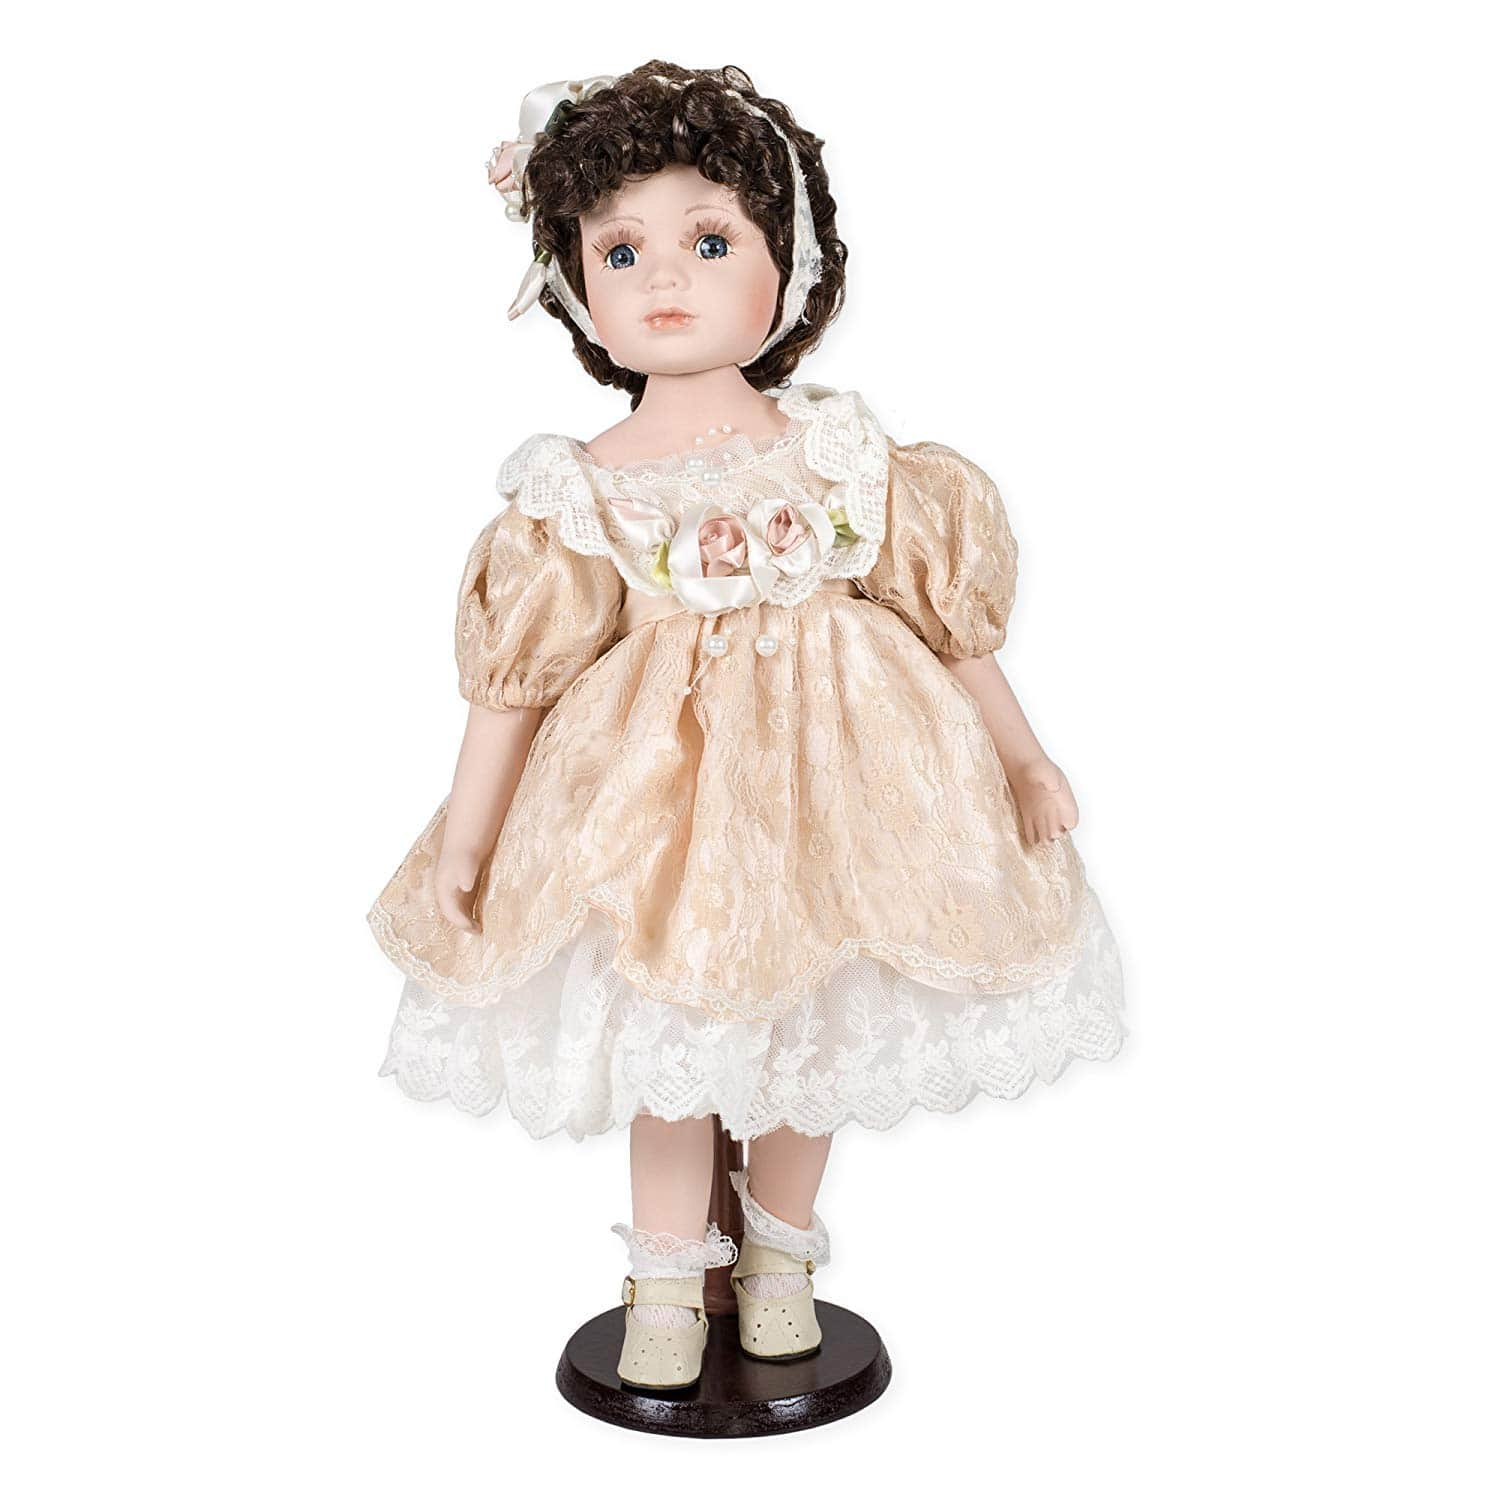 3. Delton Products Porcelain Doll Gianna, 18-min